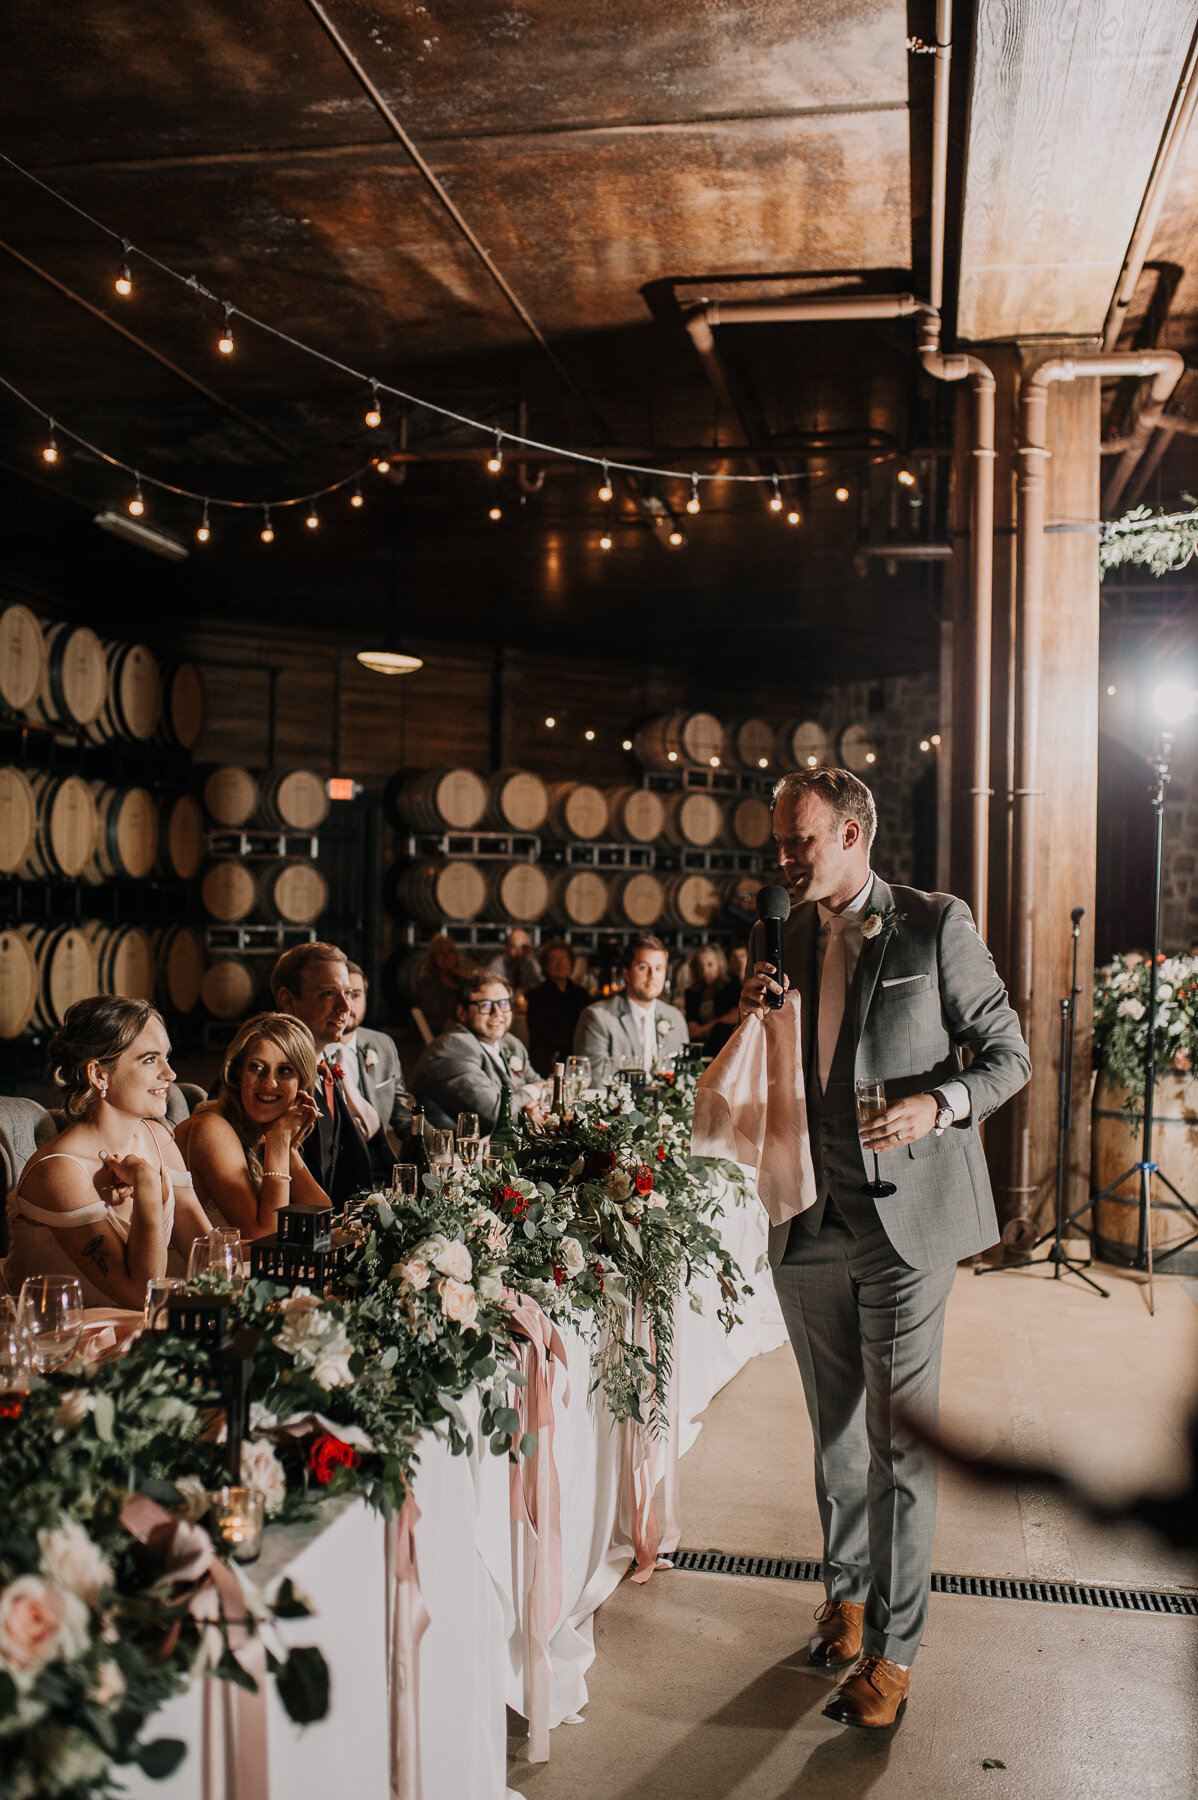 1077Swiftwater Cellars Wedding_Cle Elum Wedding_Montana Wedding Photographer_Kat & Kyle_September 15, 2018-378.jpg